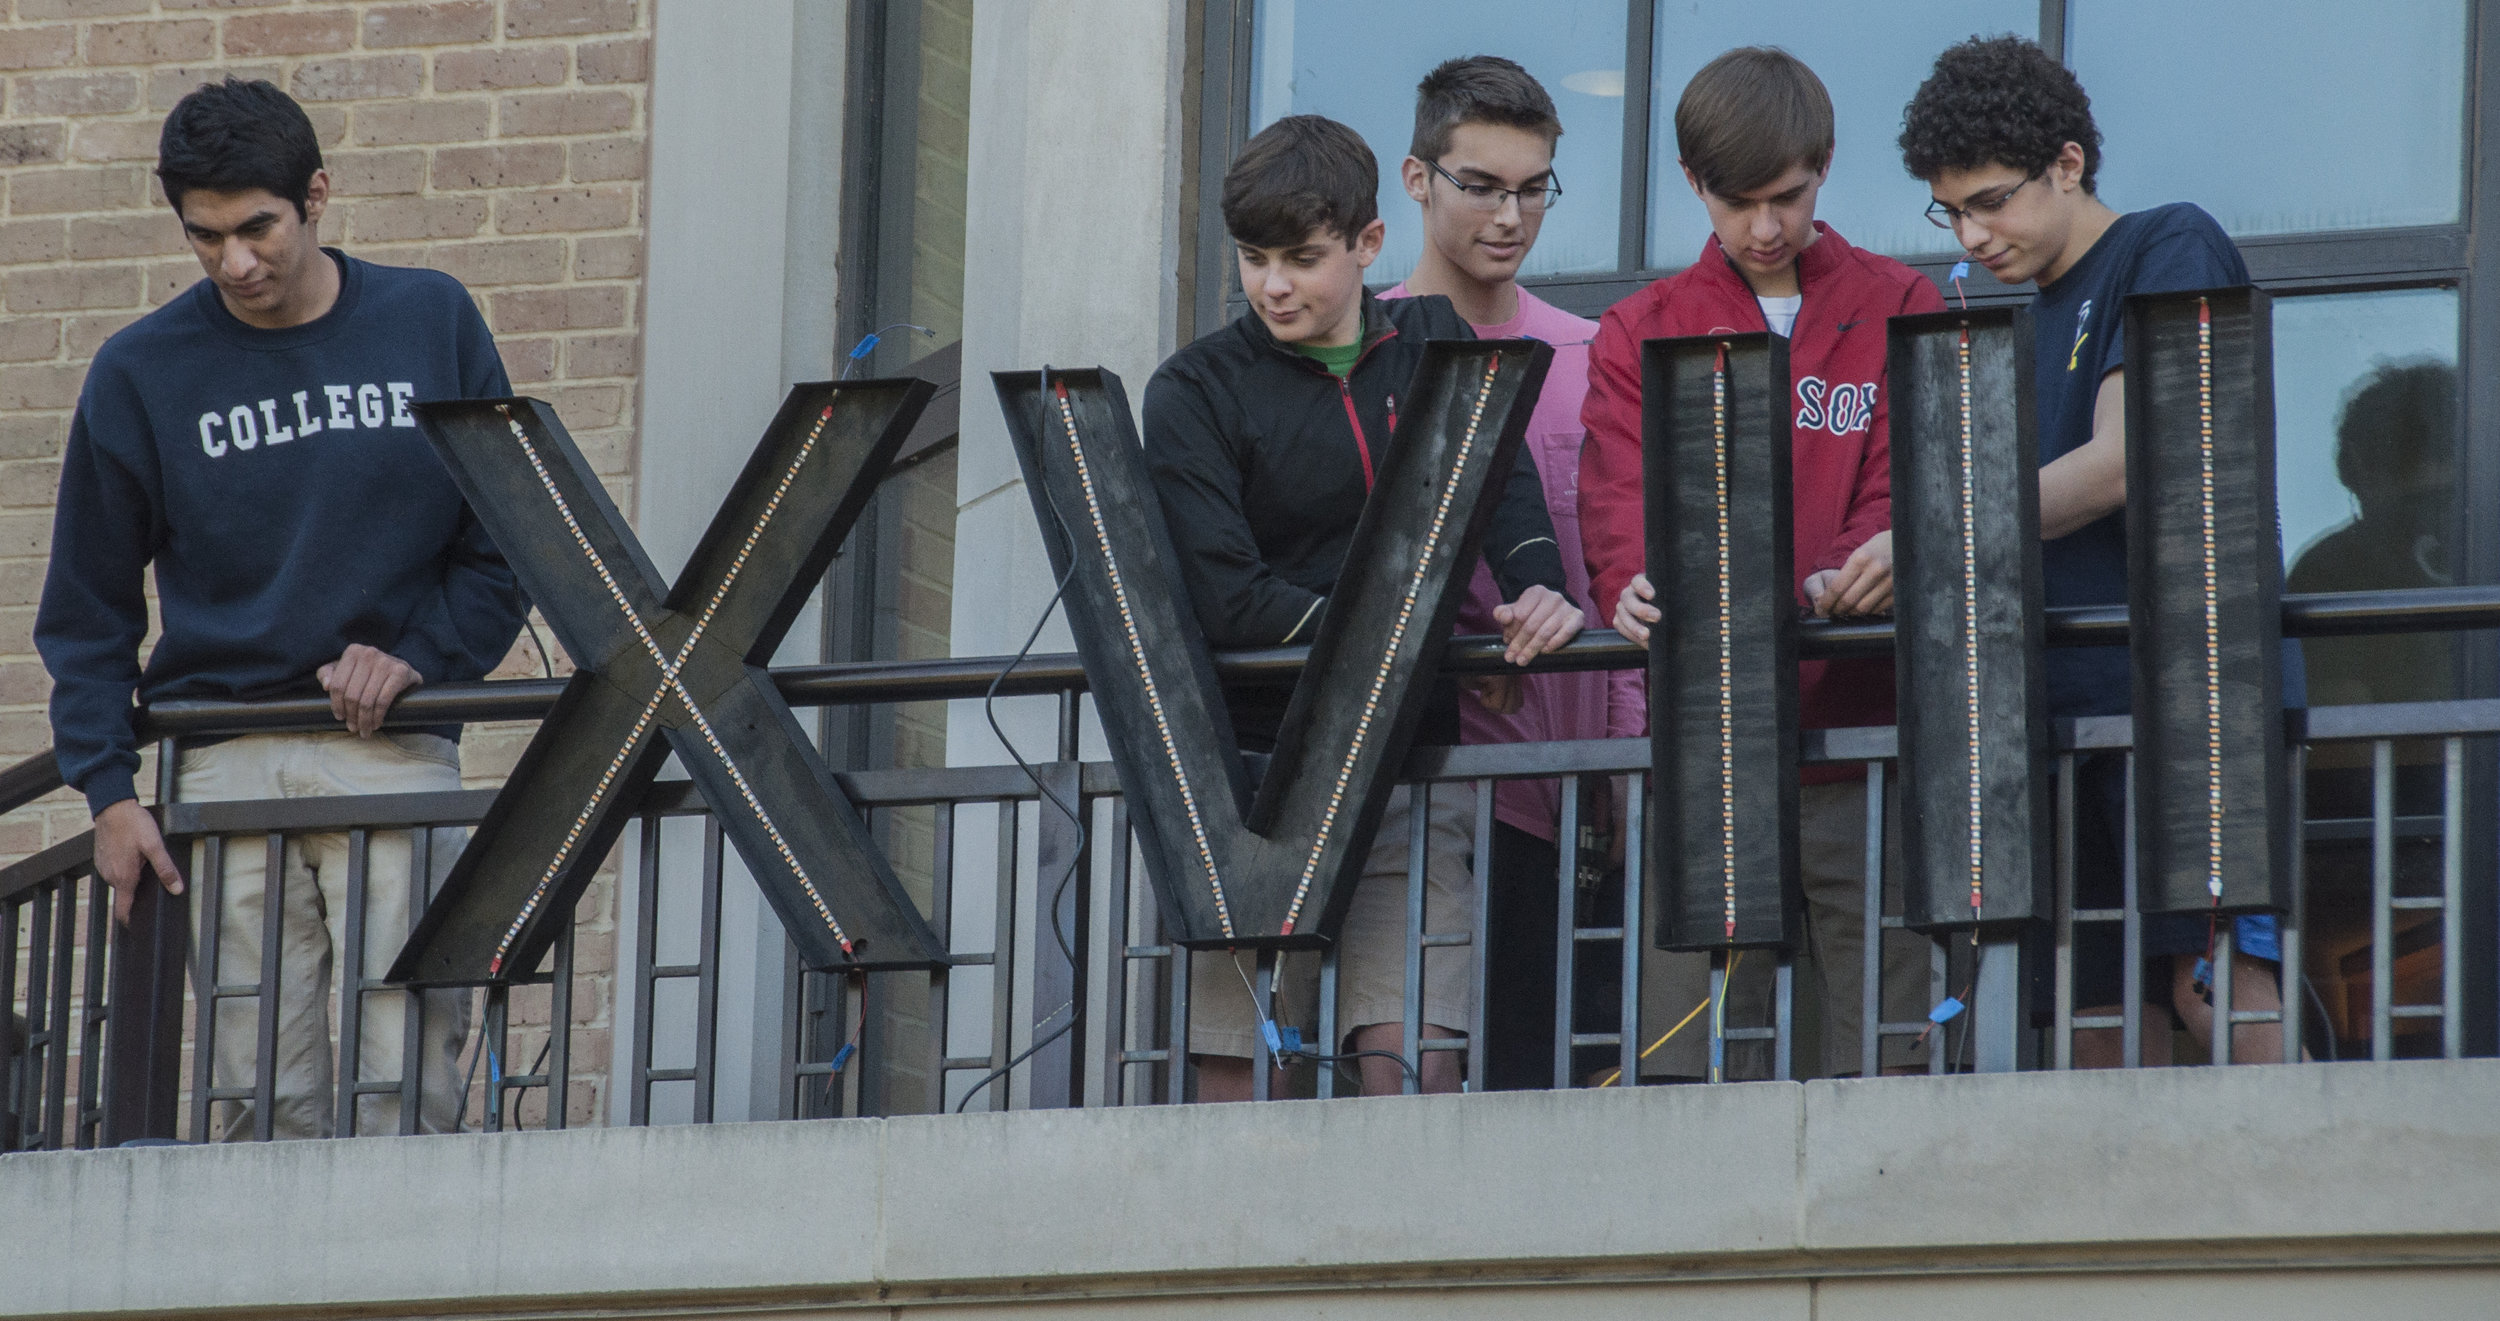 """I was helping set up the light-up 'XVIII' sign because, honestly, no class has done anything like that before,"" senior Jack Parolisi said. ""It's definitely going to be remembered for years to come."""